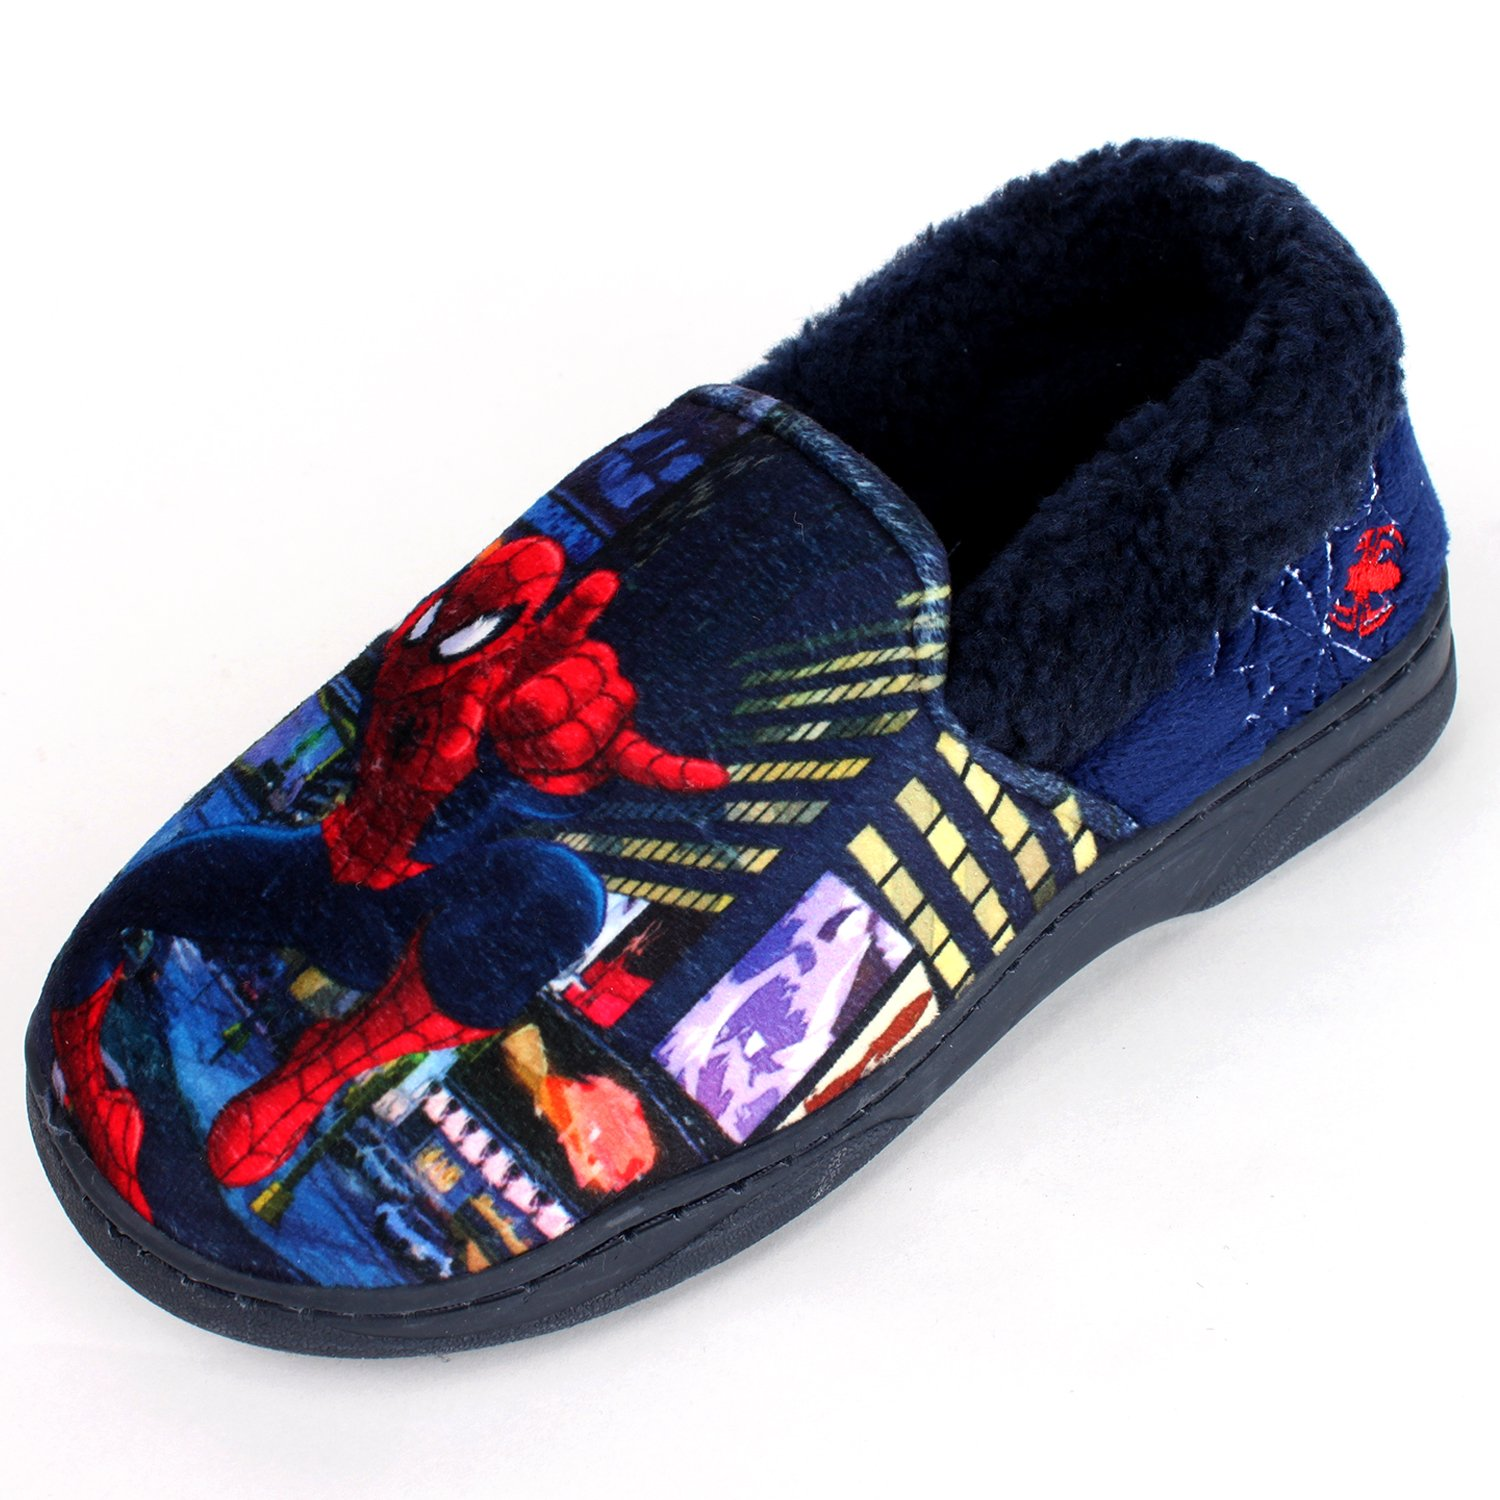 Joah Store Spider-Man Slippers for Boys Navy Red Warm Fur Clog Mule Indoor Shoes (3.5 M US Big Kid, Spider-Man) by Joah Store (Image #2)